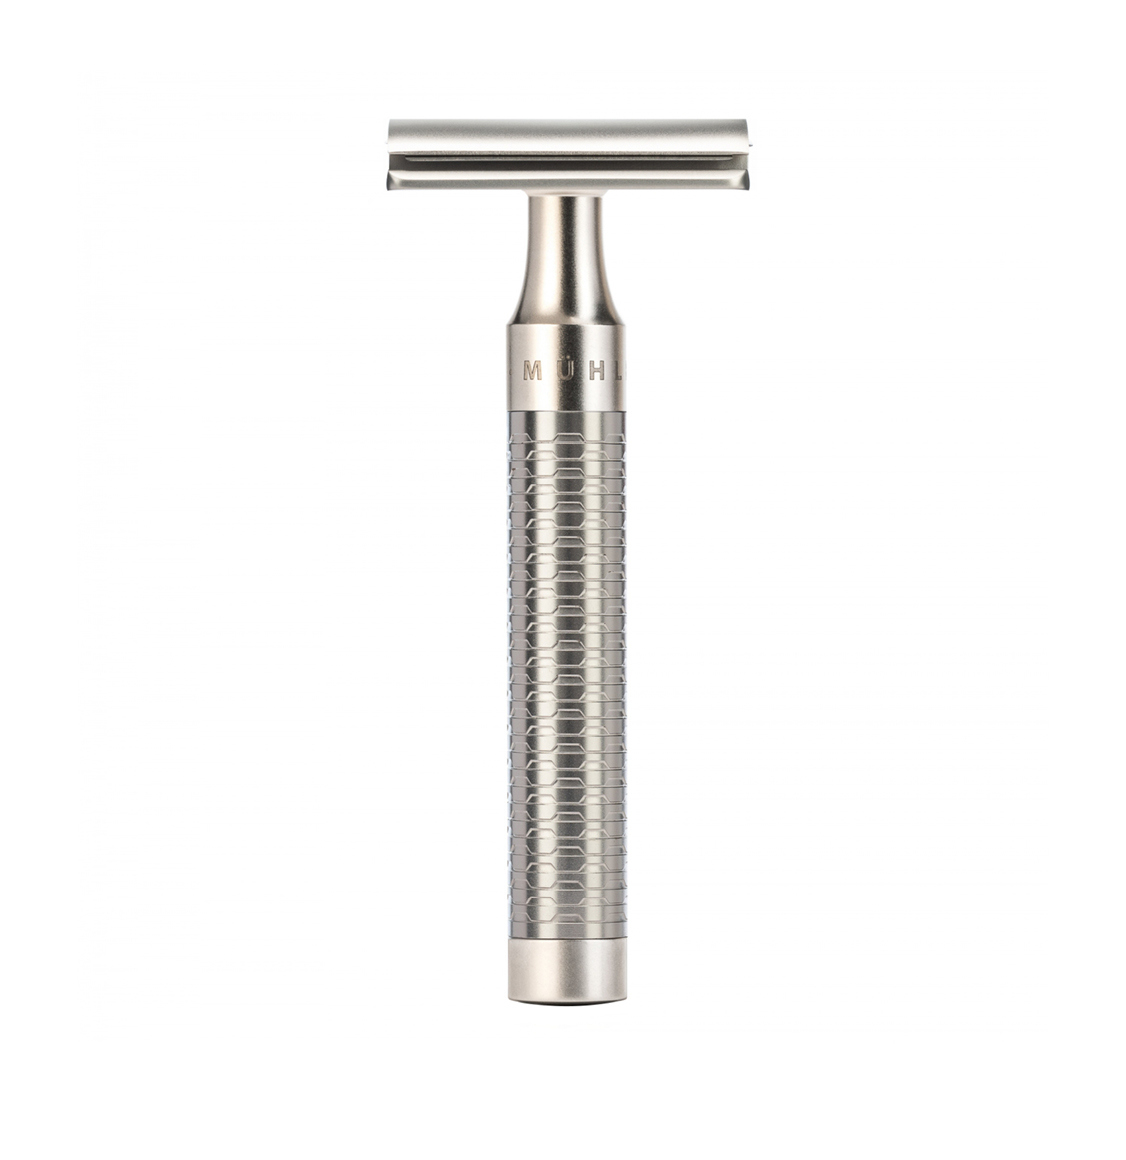 Muhle Rocca Silver Safety Razor